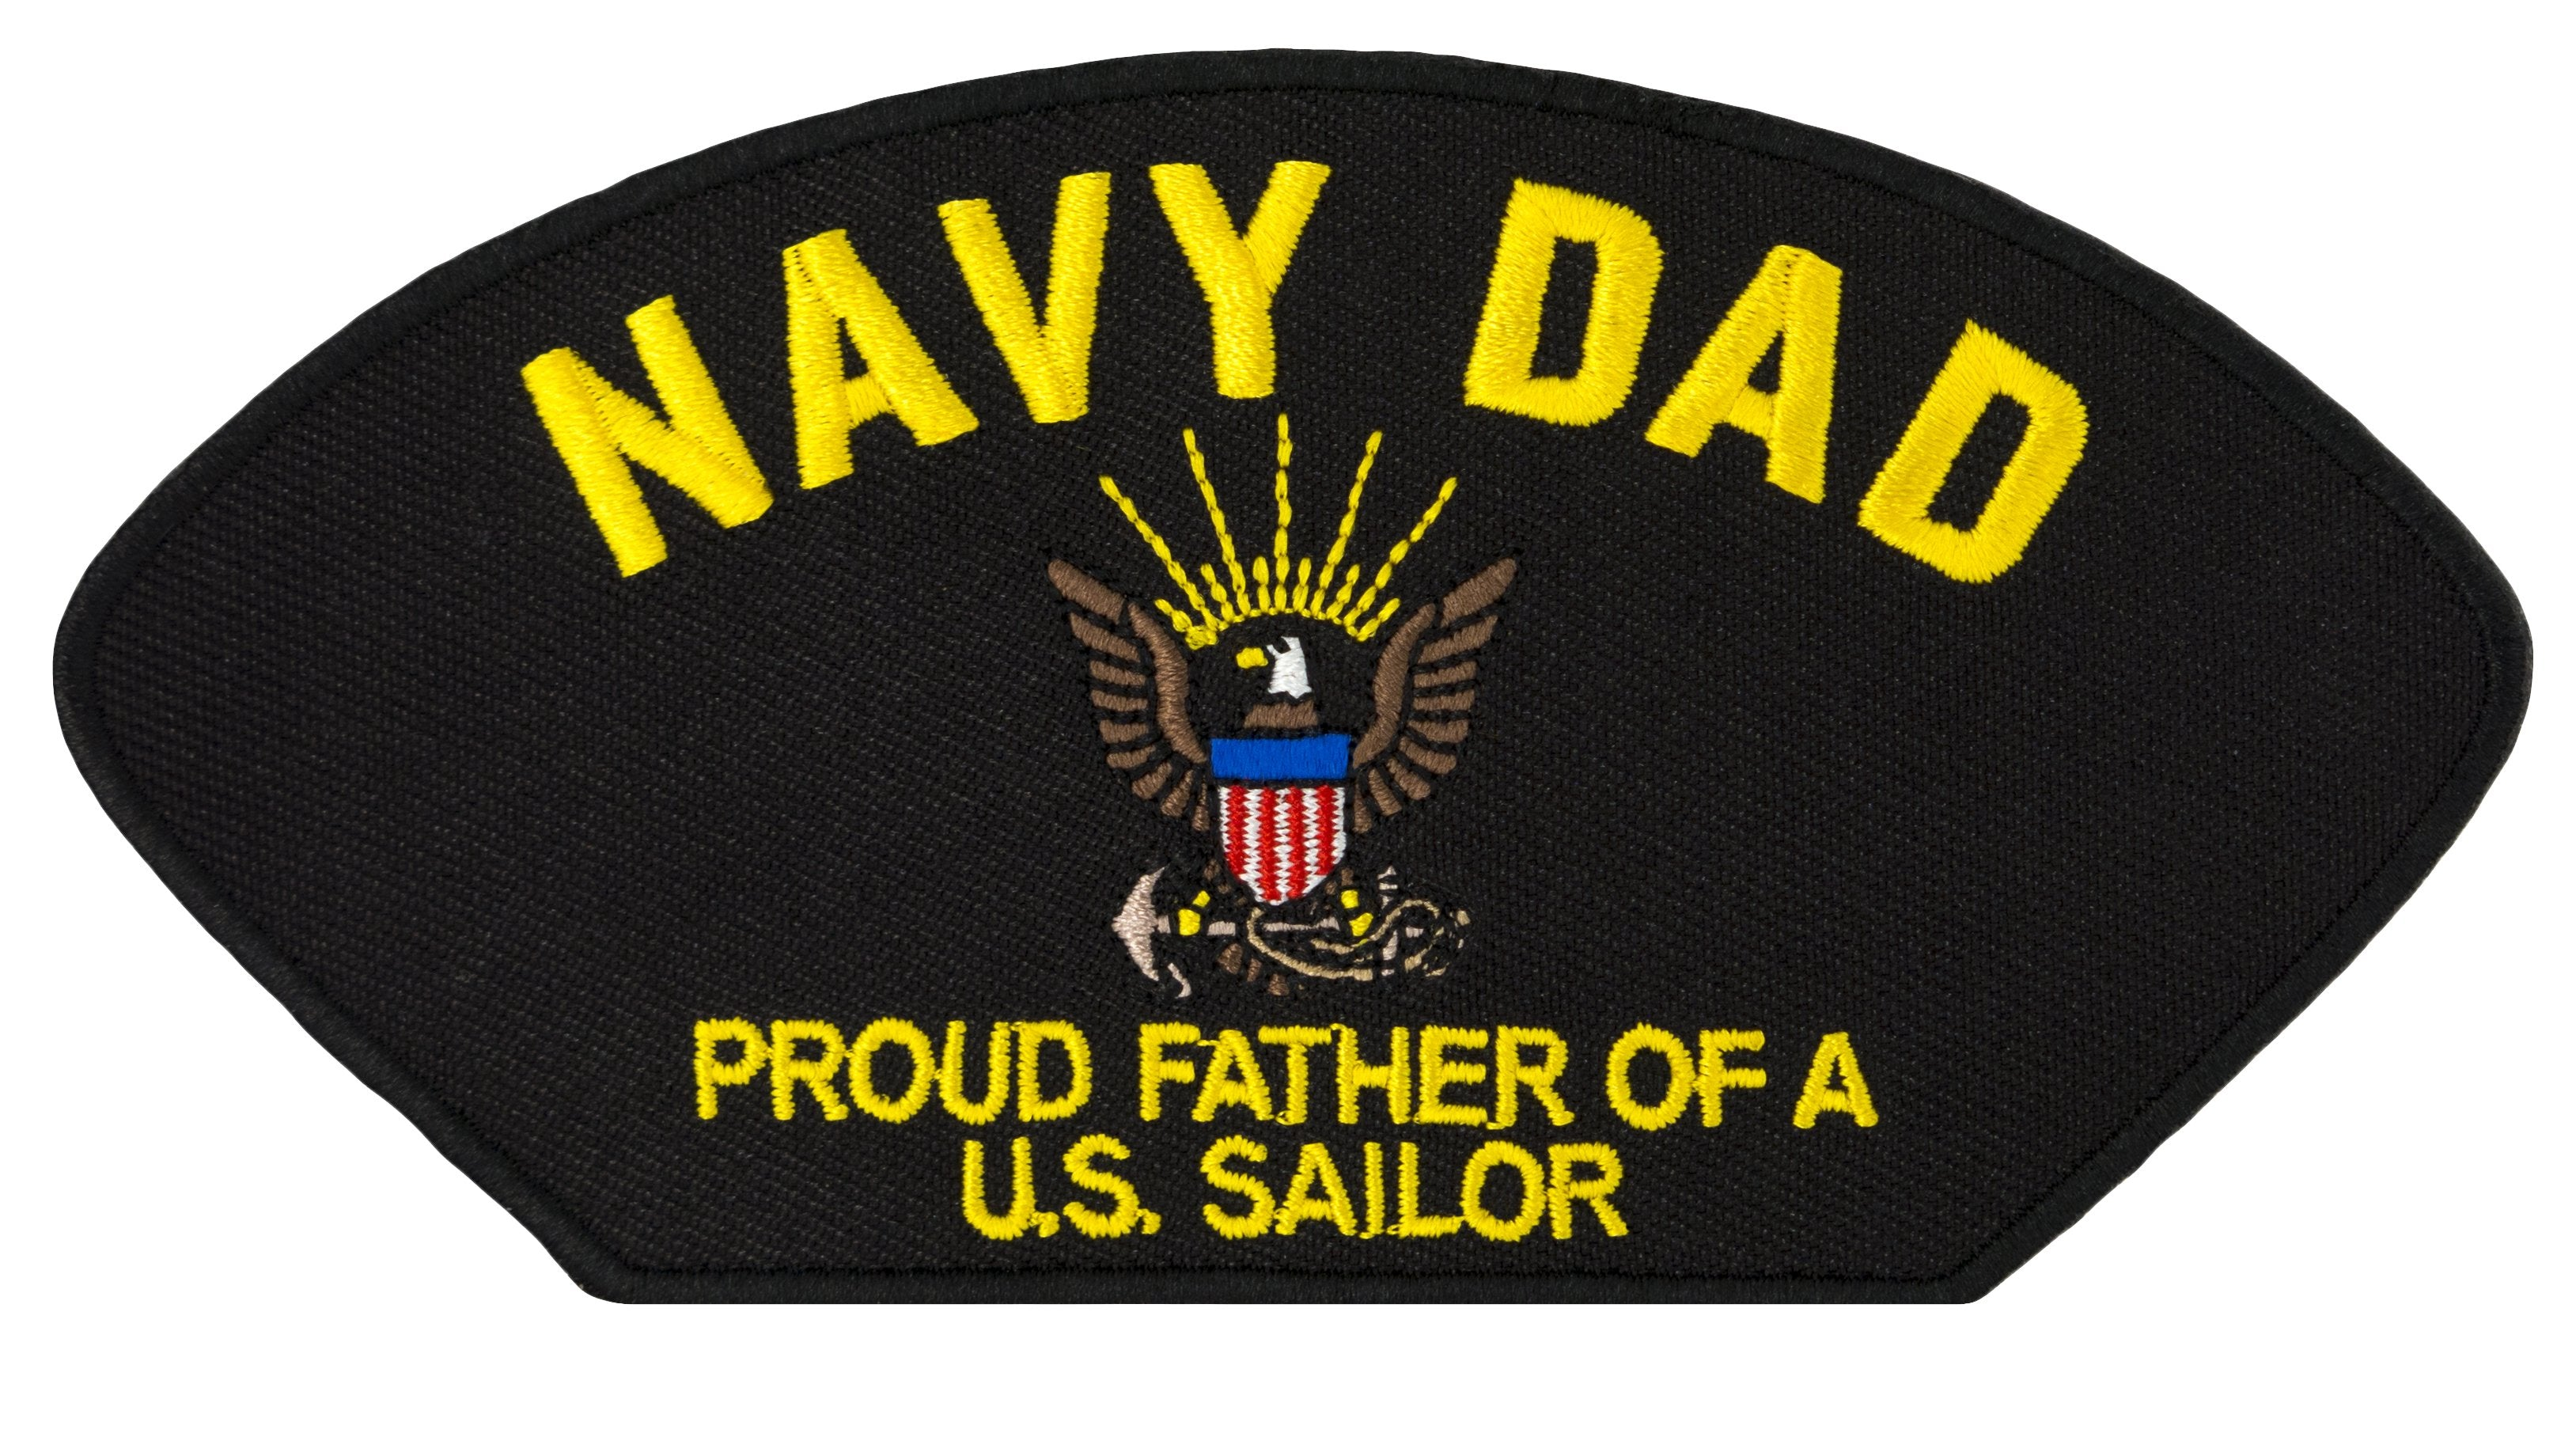 "US Navy Dad - Proud Father of a US Sailor Embroidered Patch 5 3/16"" x 2 5/8"""